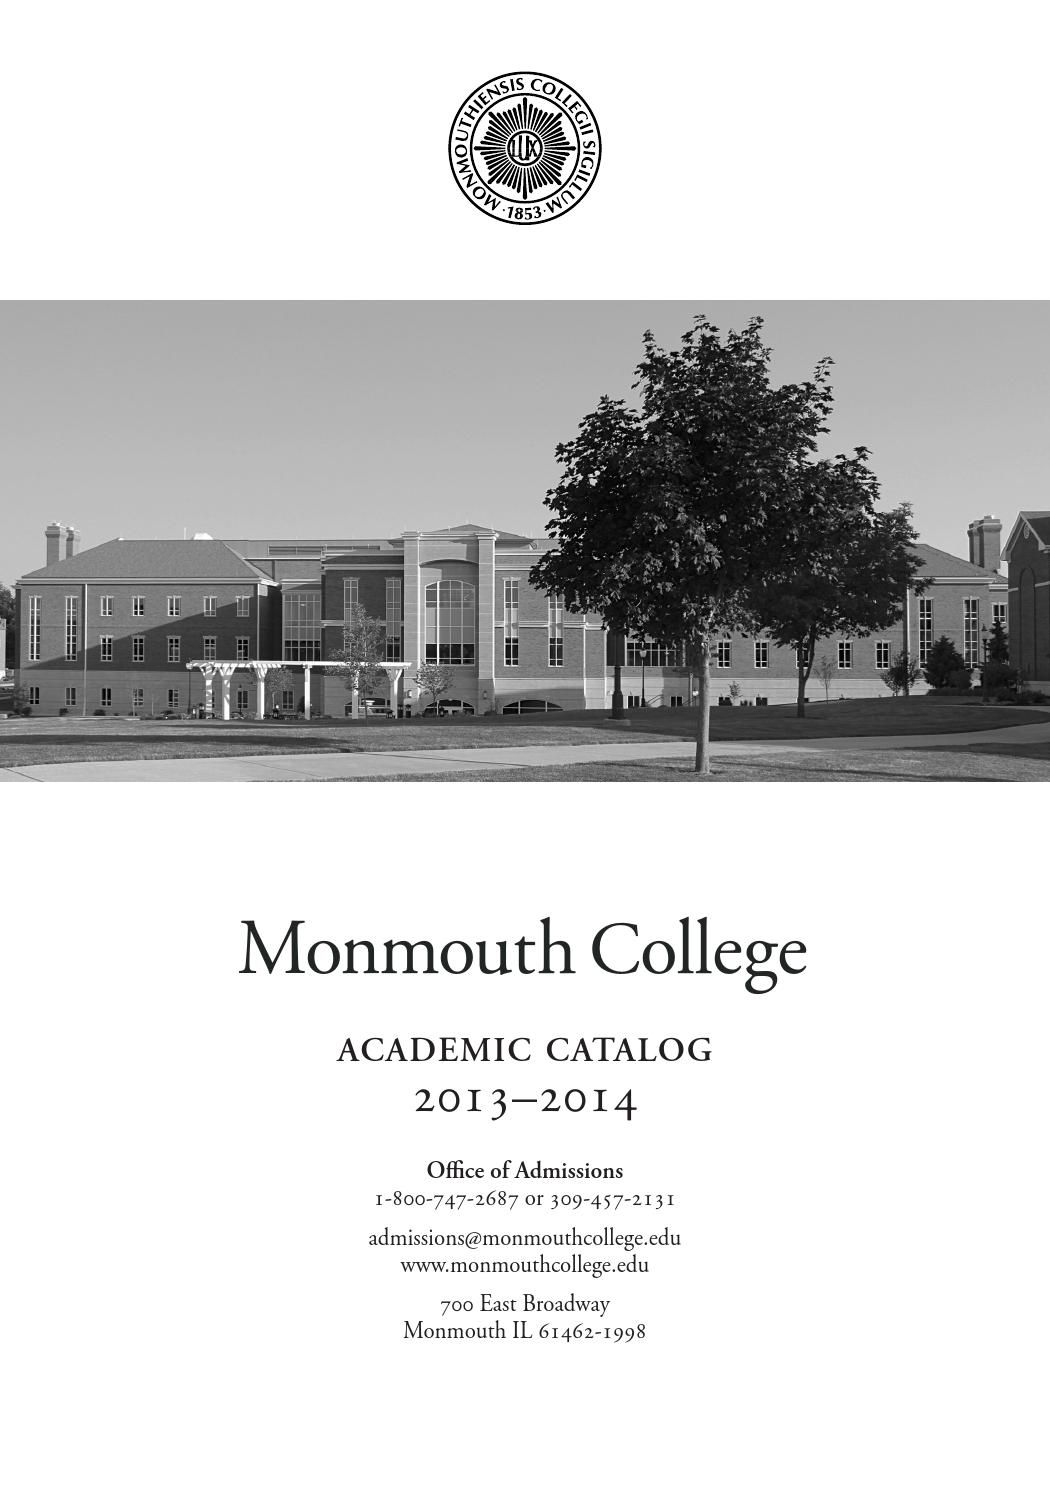 Mc Academic Catalog 2013 2014 By Monmouth College Issuu Dc Thevenin Equivalent Example 1 Youtube